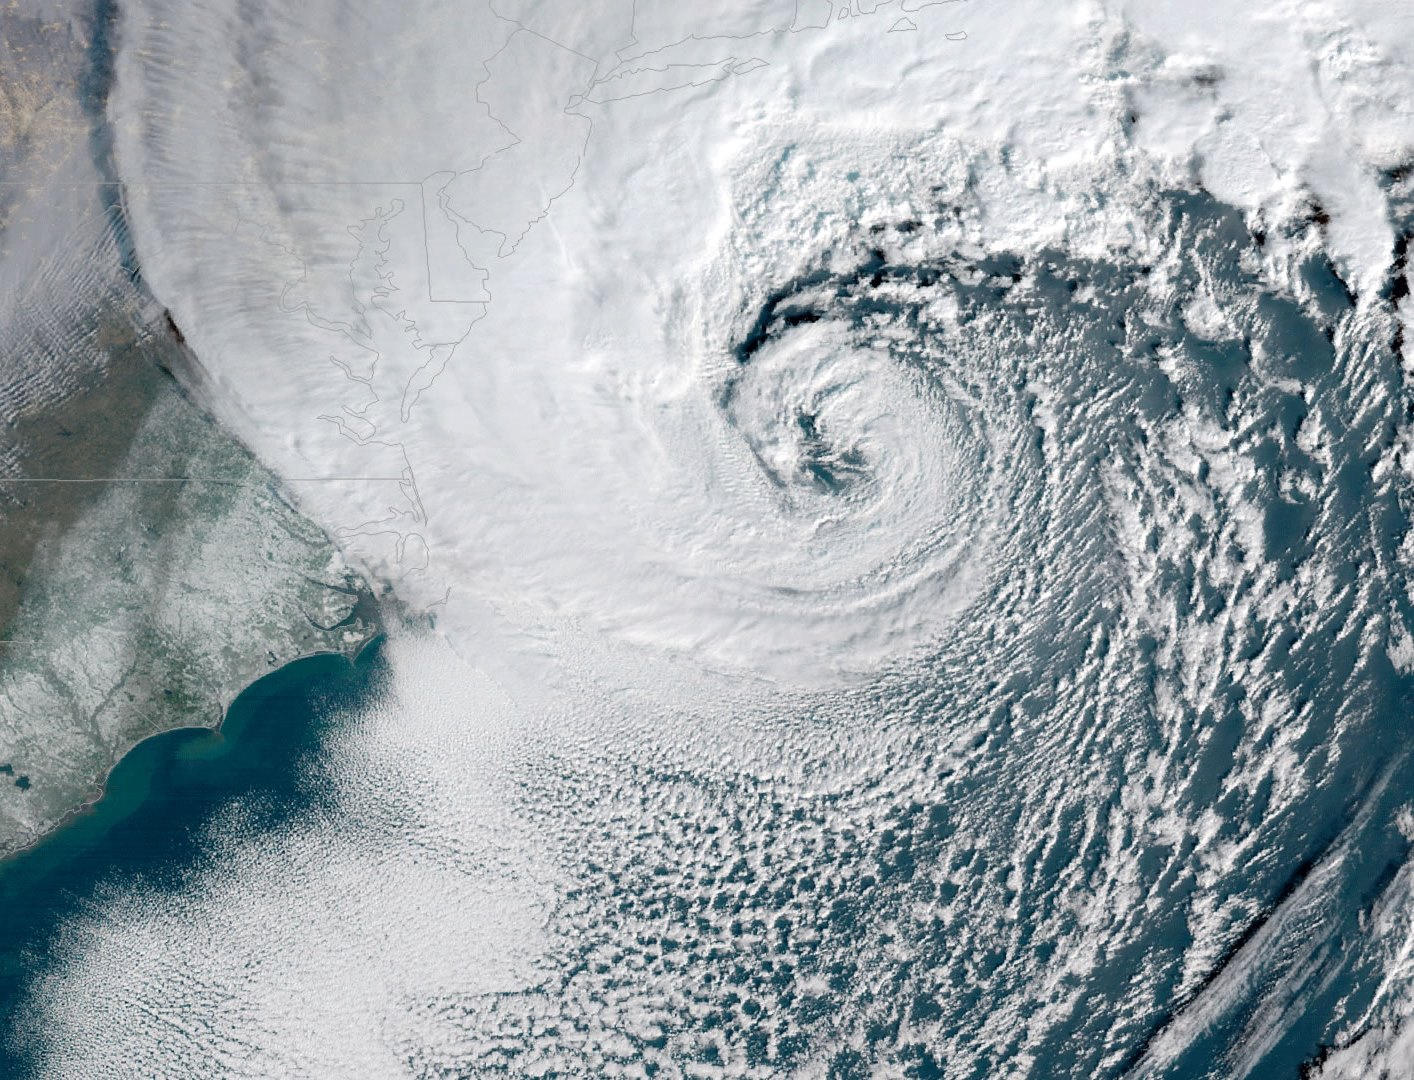 Most of the large storm surges in the northeastern United States are not caused by hurricanes, but by extratropical cyclones.